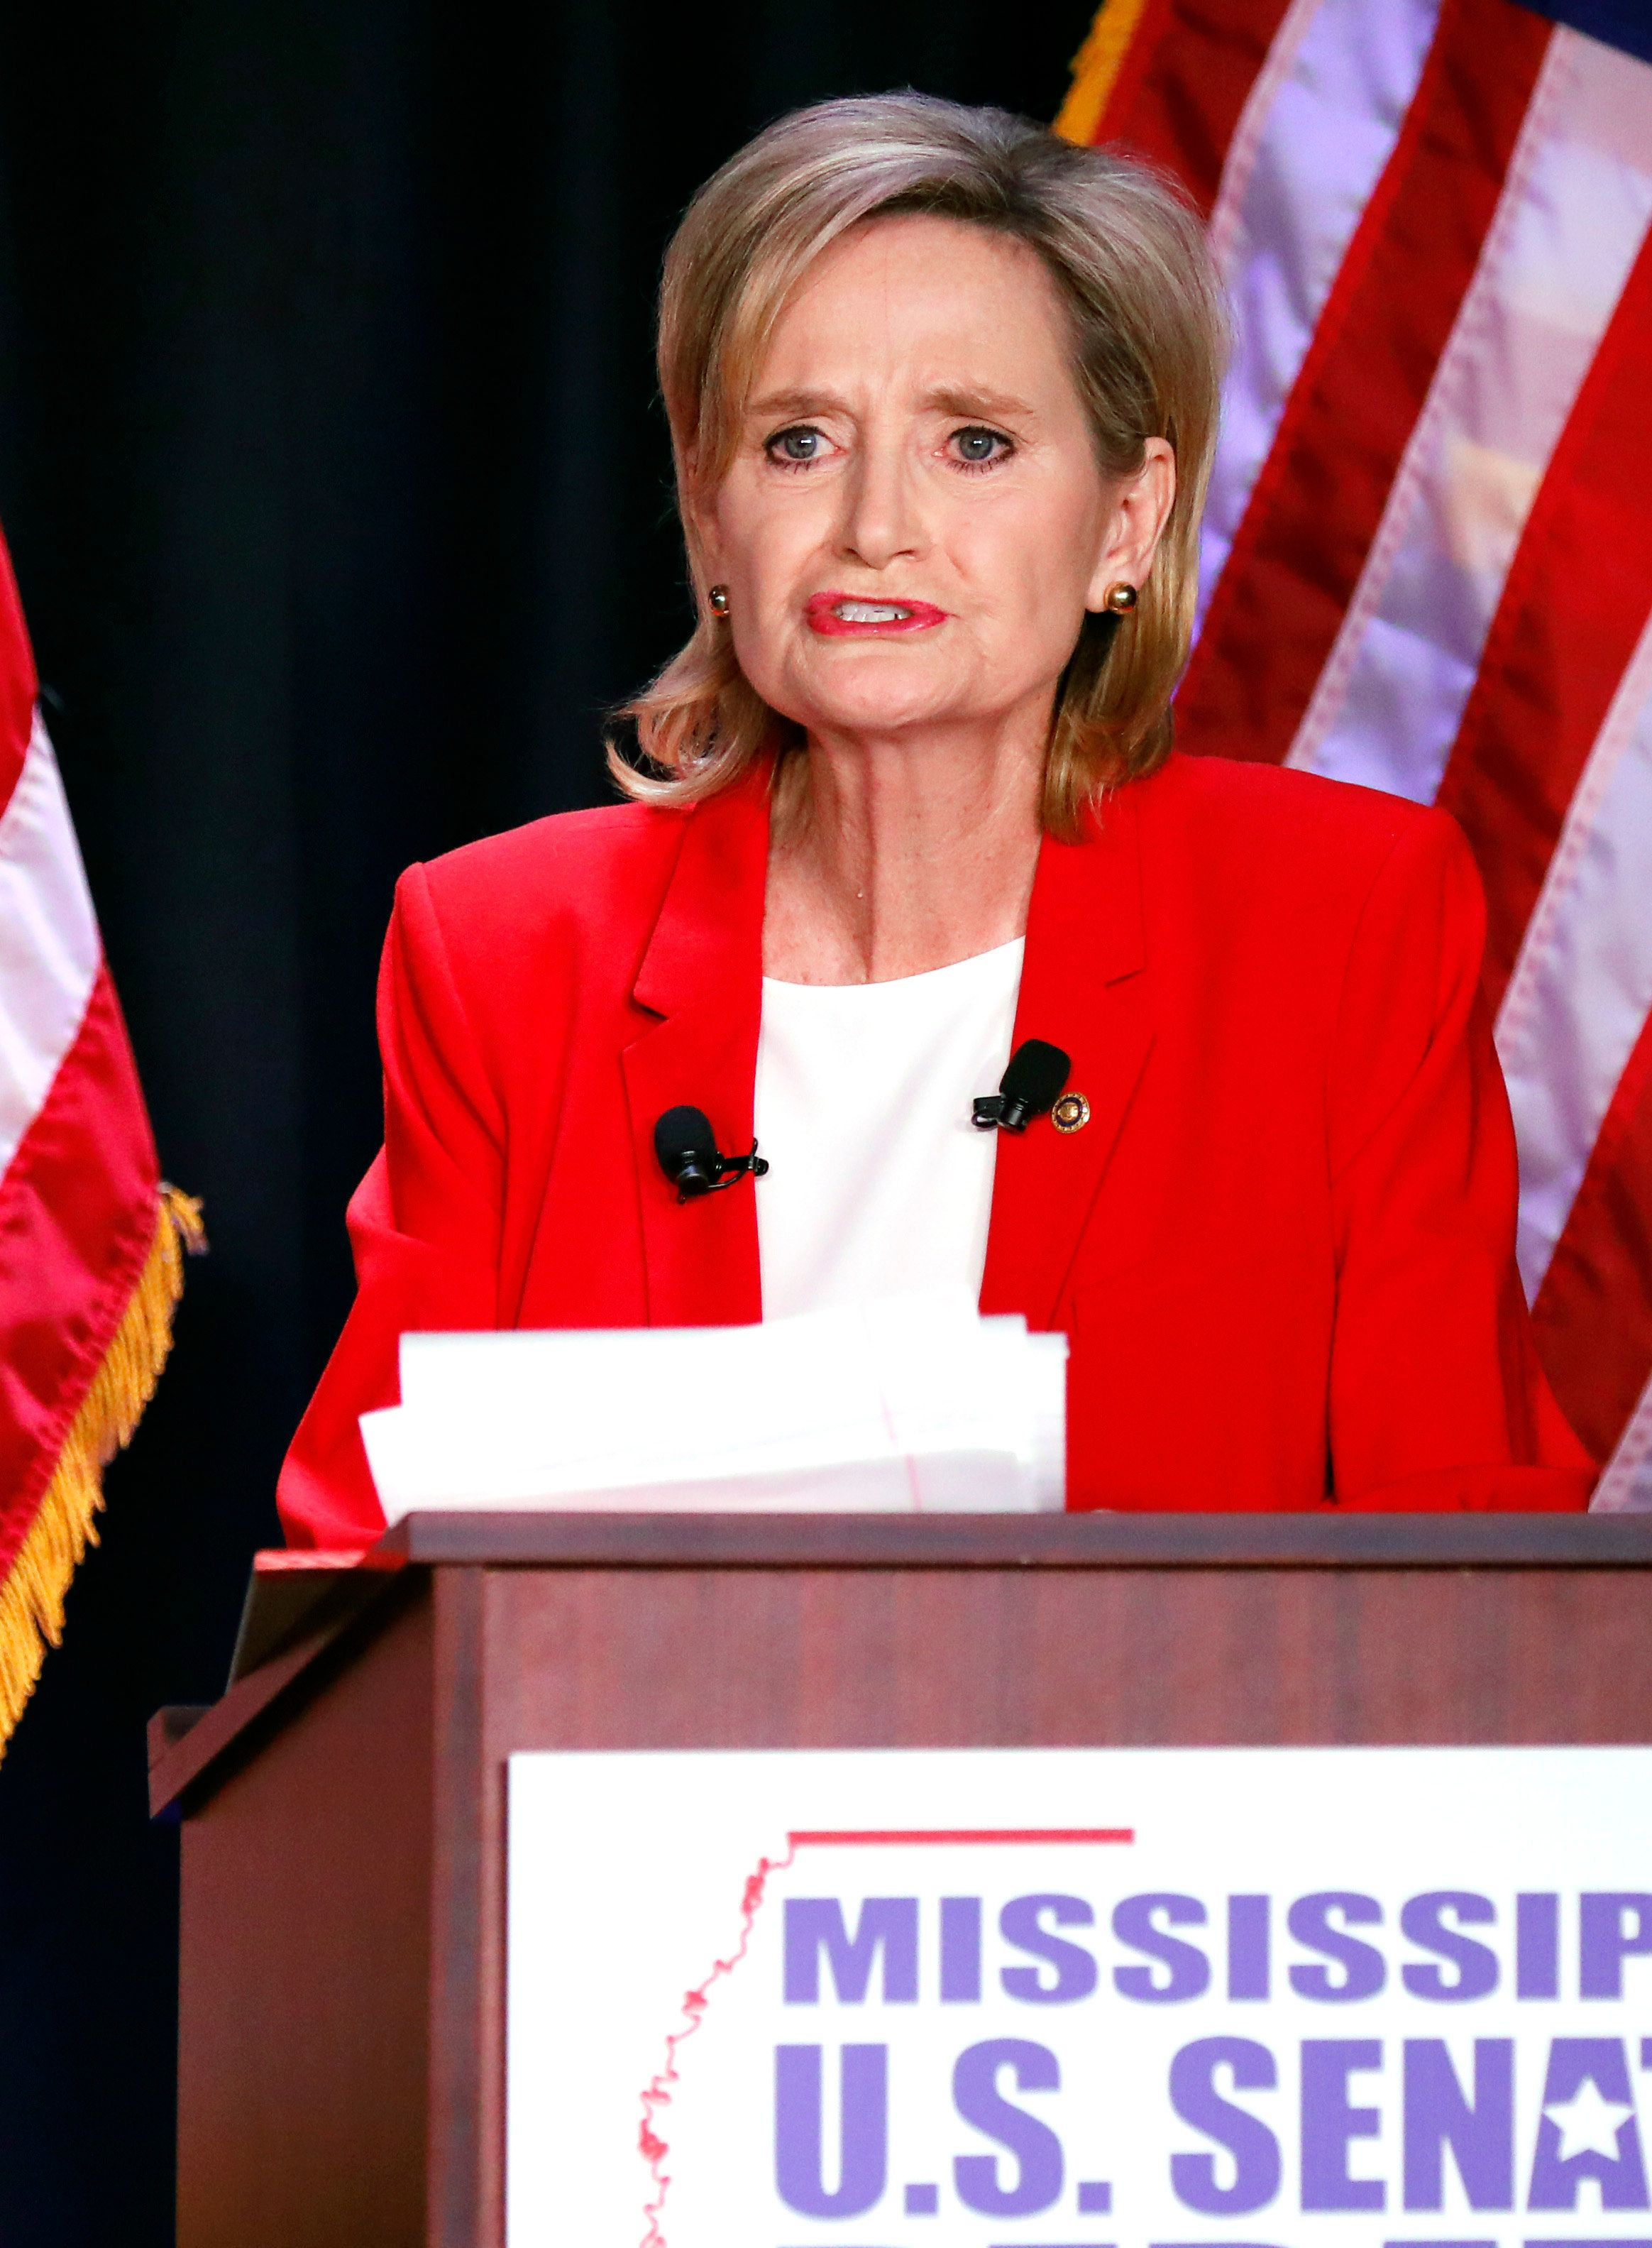 MLB Asks Cindy Hyde-Smith Campaign To Return $5,000 Donation: